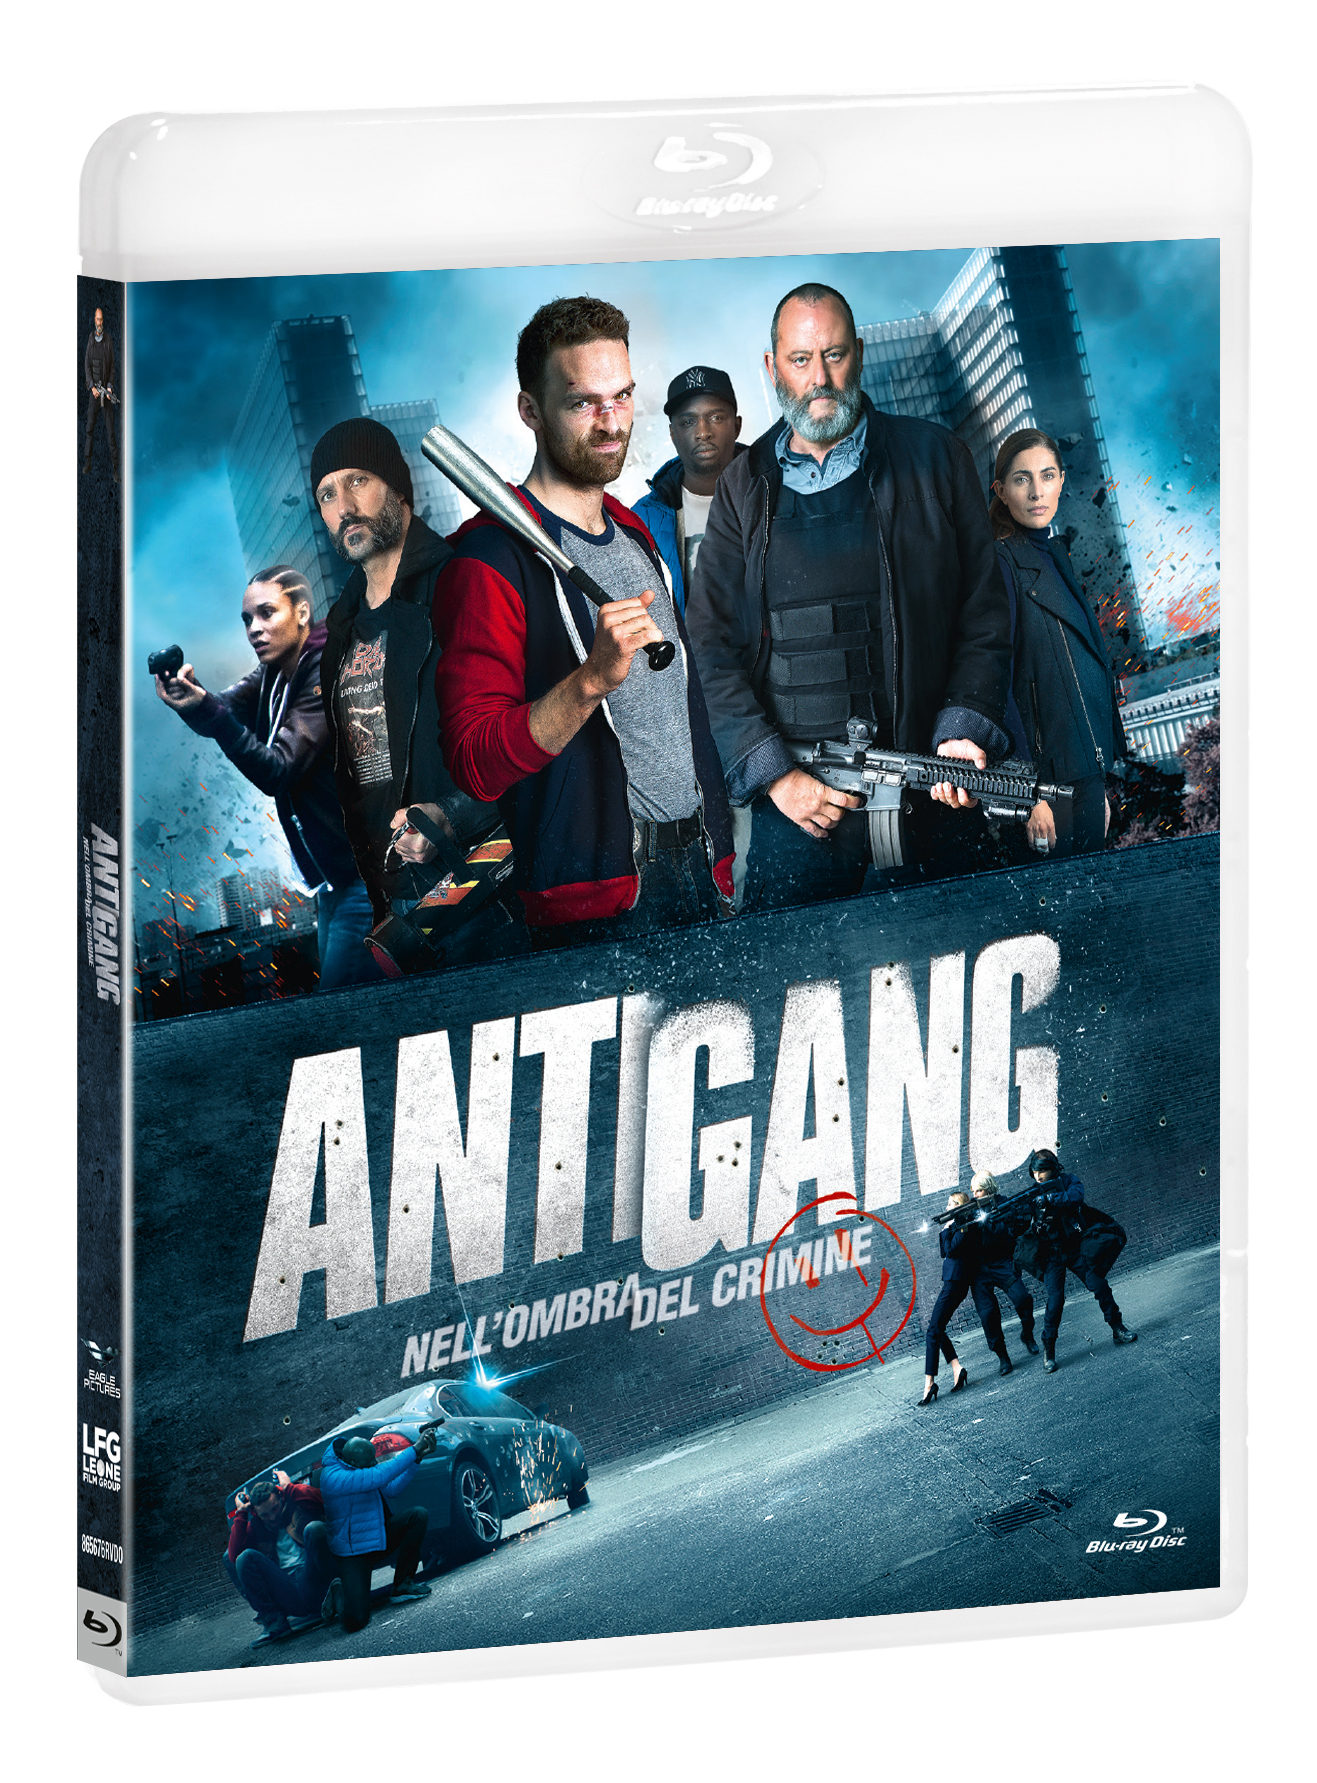 ANTIGANG - NELL'OMBRA DEL CRIMINE - BLU RAY